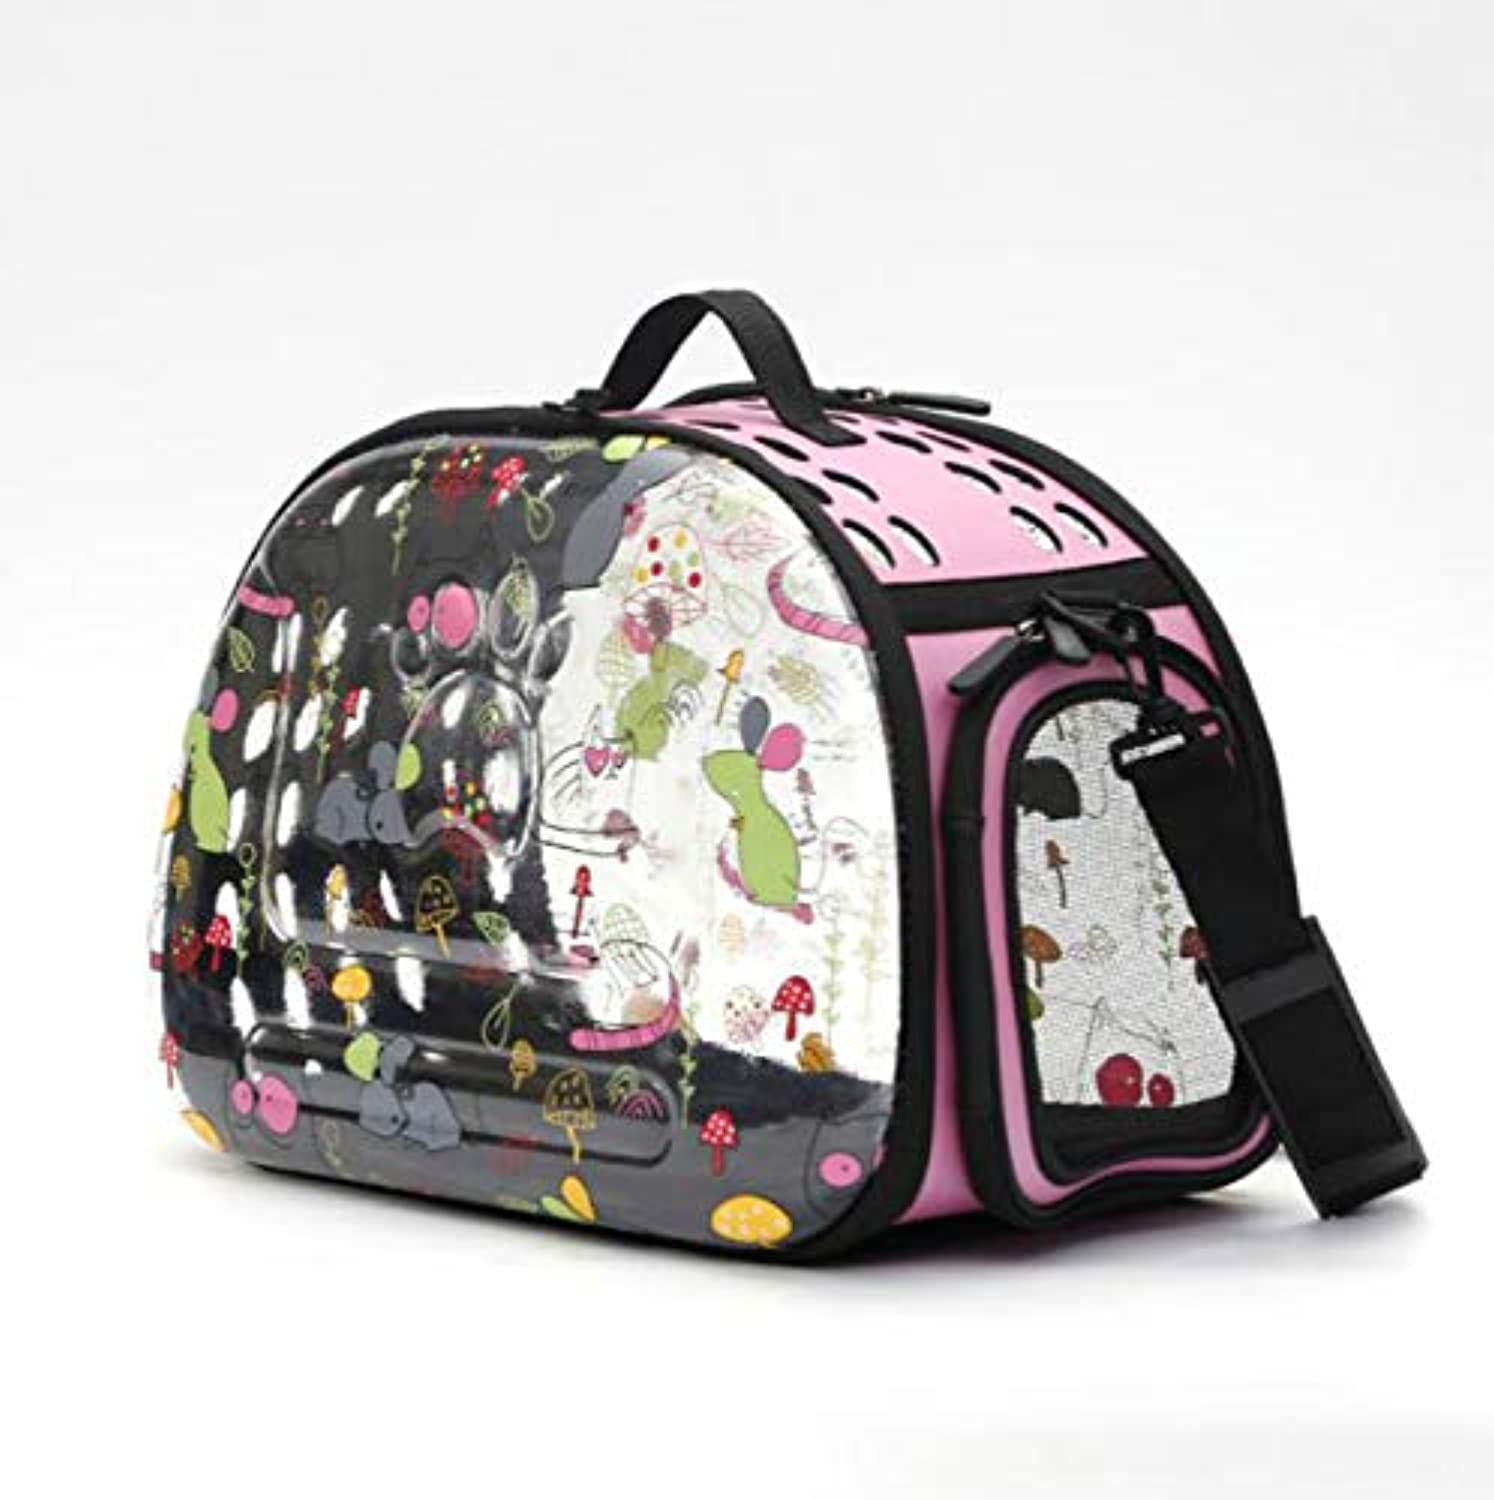 Fashion Shop Airline Approved Innovative Patent Bubble Pet Carriers Traveler Bubble Backpack Pet Carrier for Cats (Pink (New style))